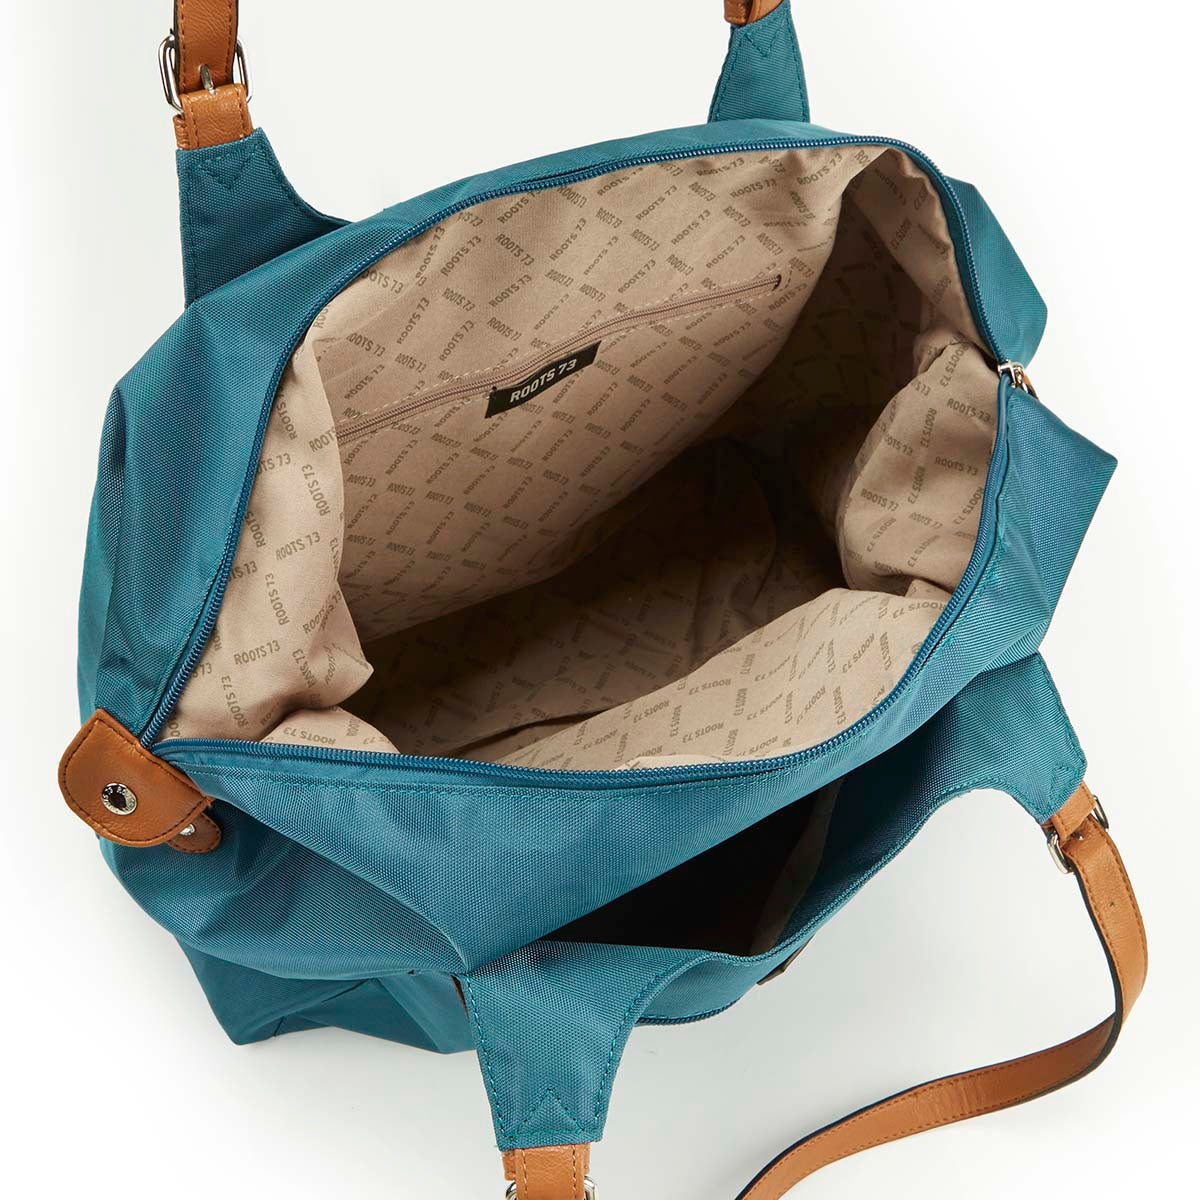 Lds Roots73 teal nylon large tote bag